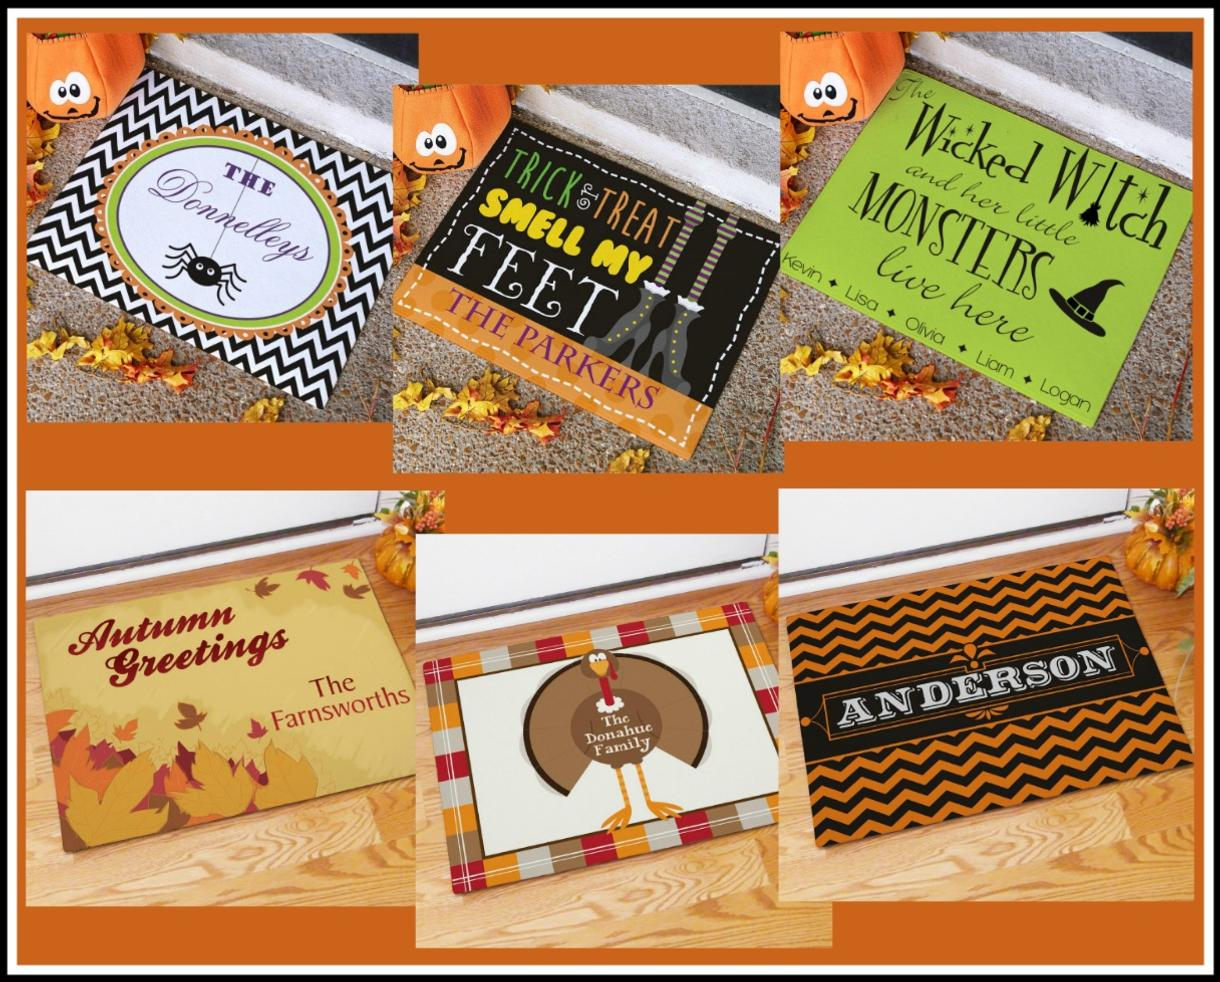 1699 for personalized fall doormats tons of great options for 1699 for personalized fall doormats tons of great options for halloween thanksgiving fall 2498 value 32 off kristyandbryce Images